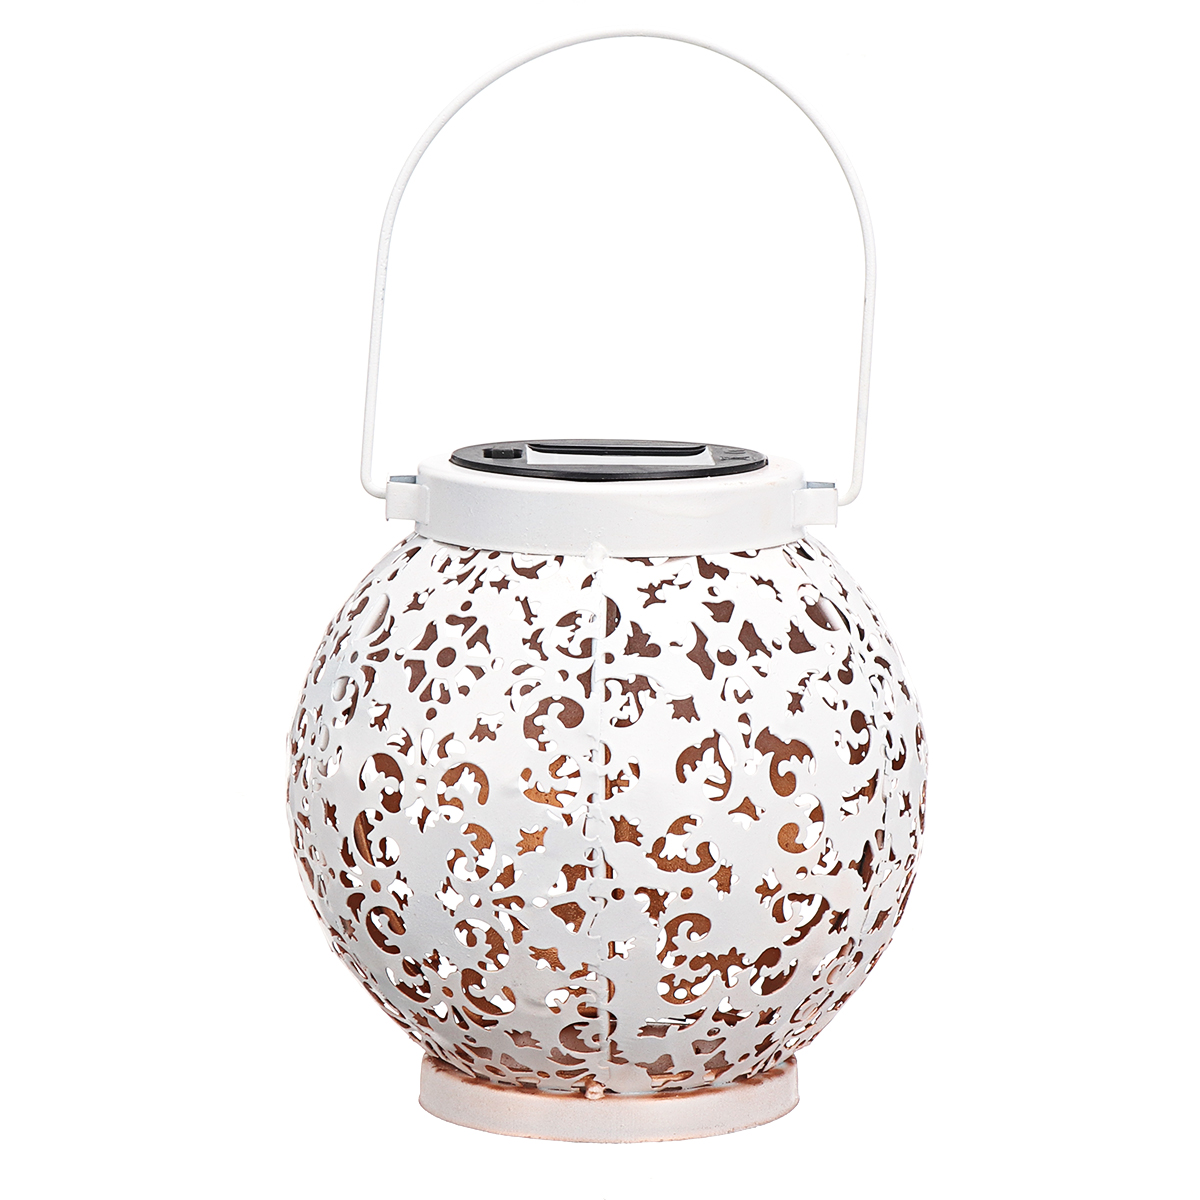 Patio Hollow Indoor Outdoor Solar Power Lantern Hanging Light Garden Lamp Yard